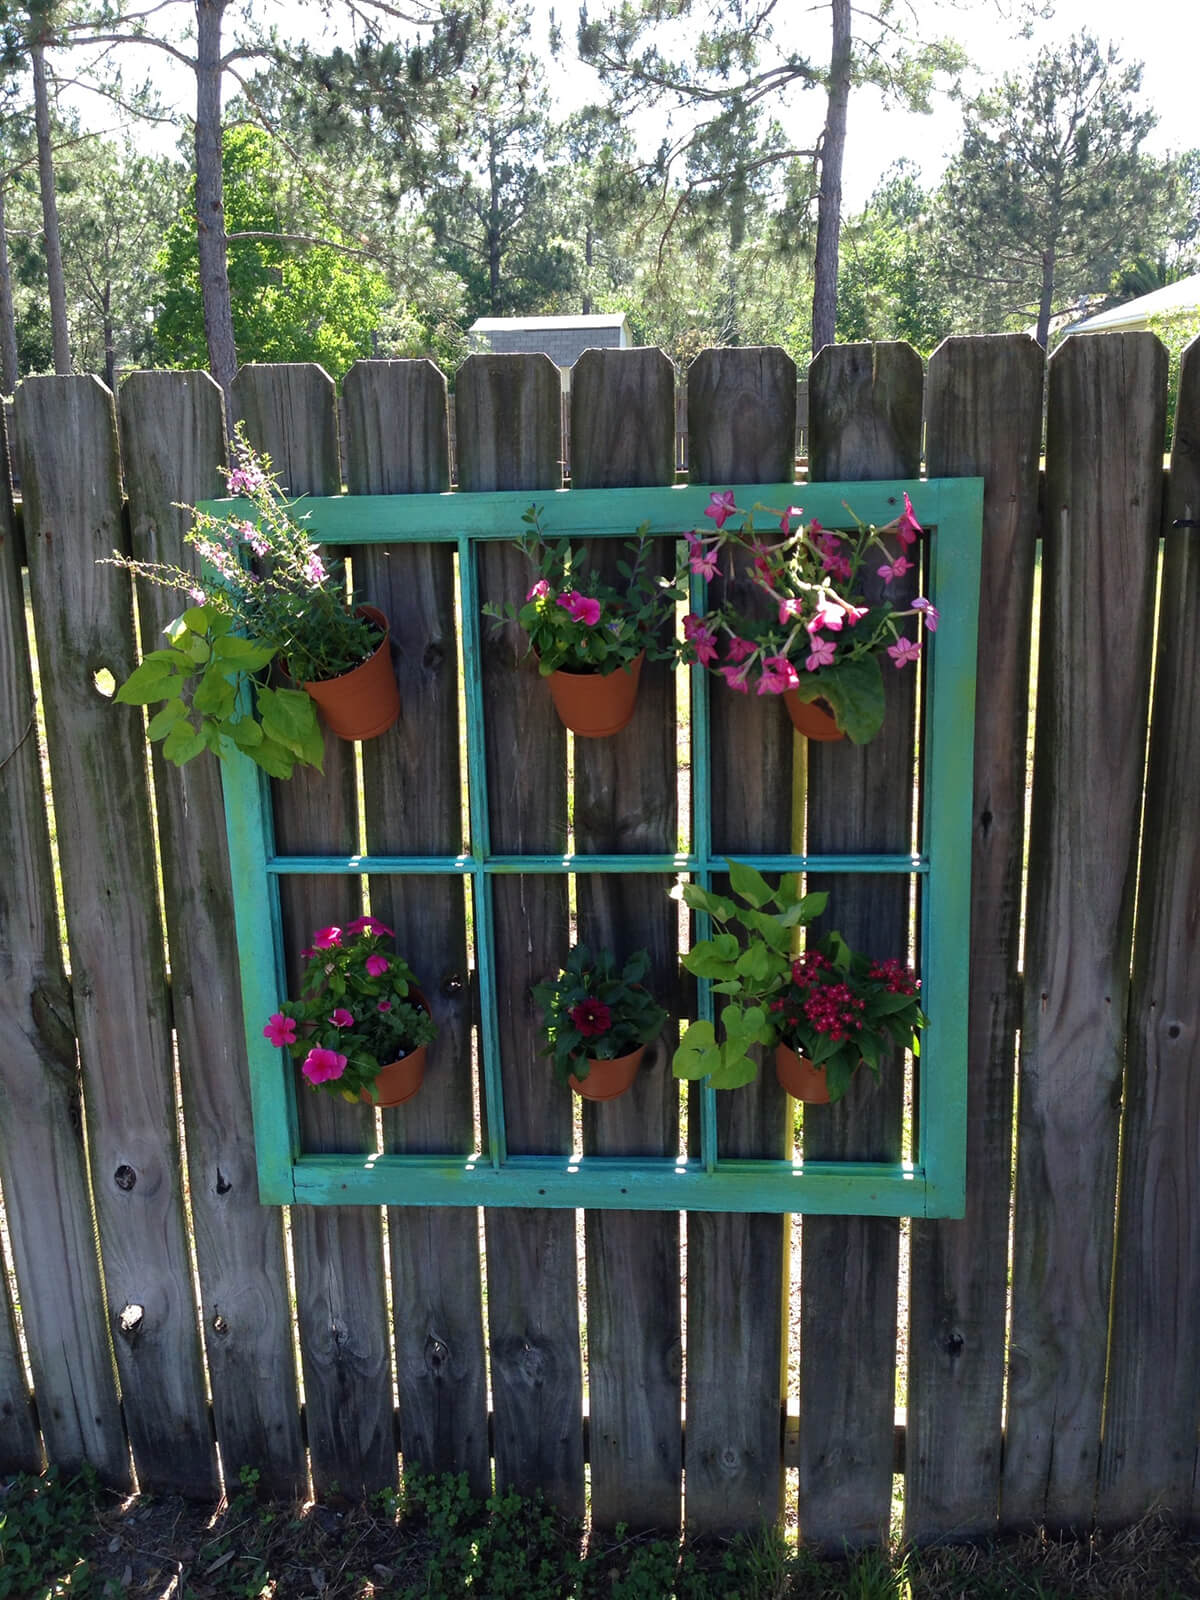 Window Frame for Hanging Plant Pots